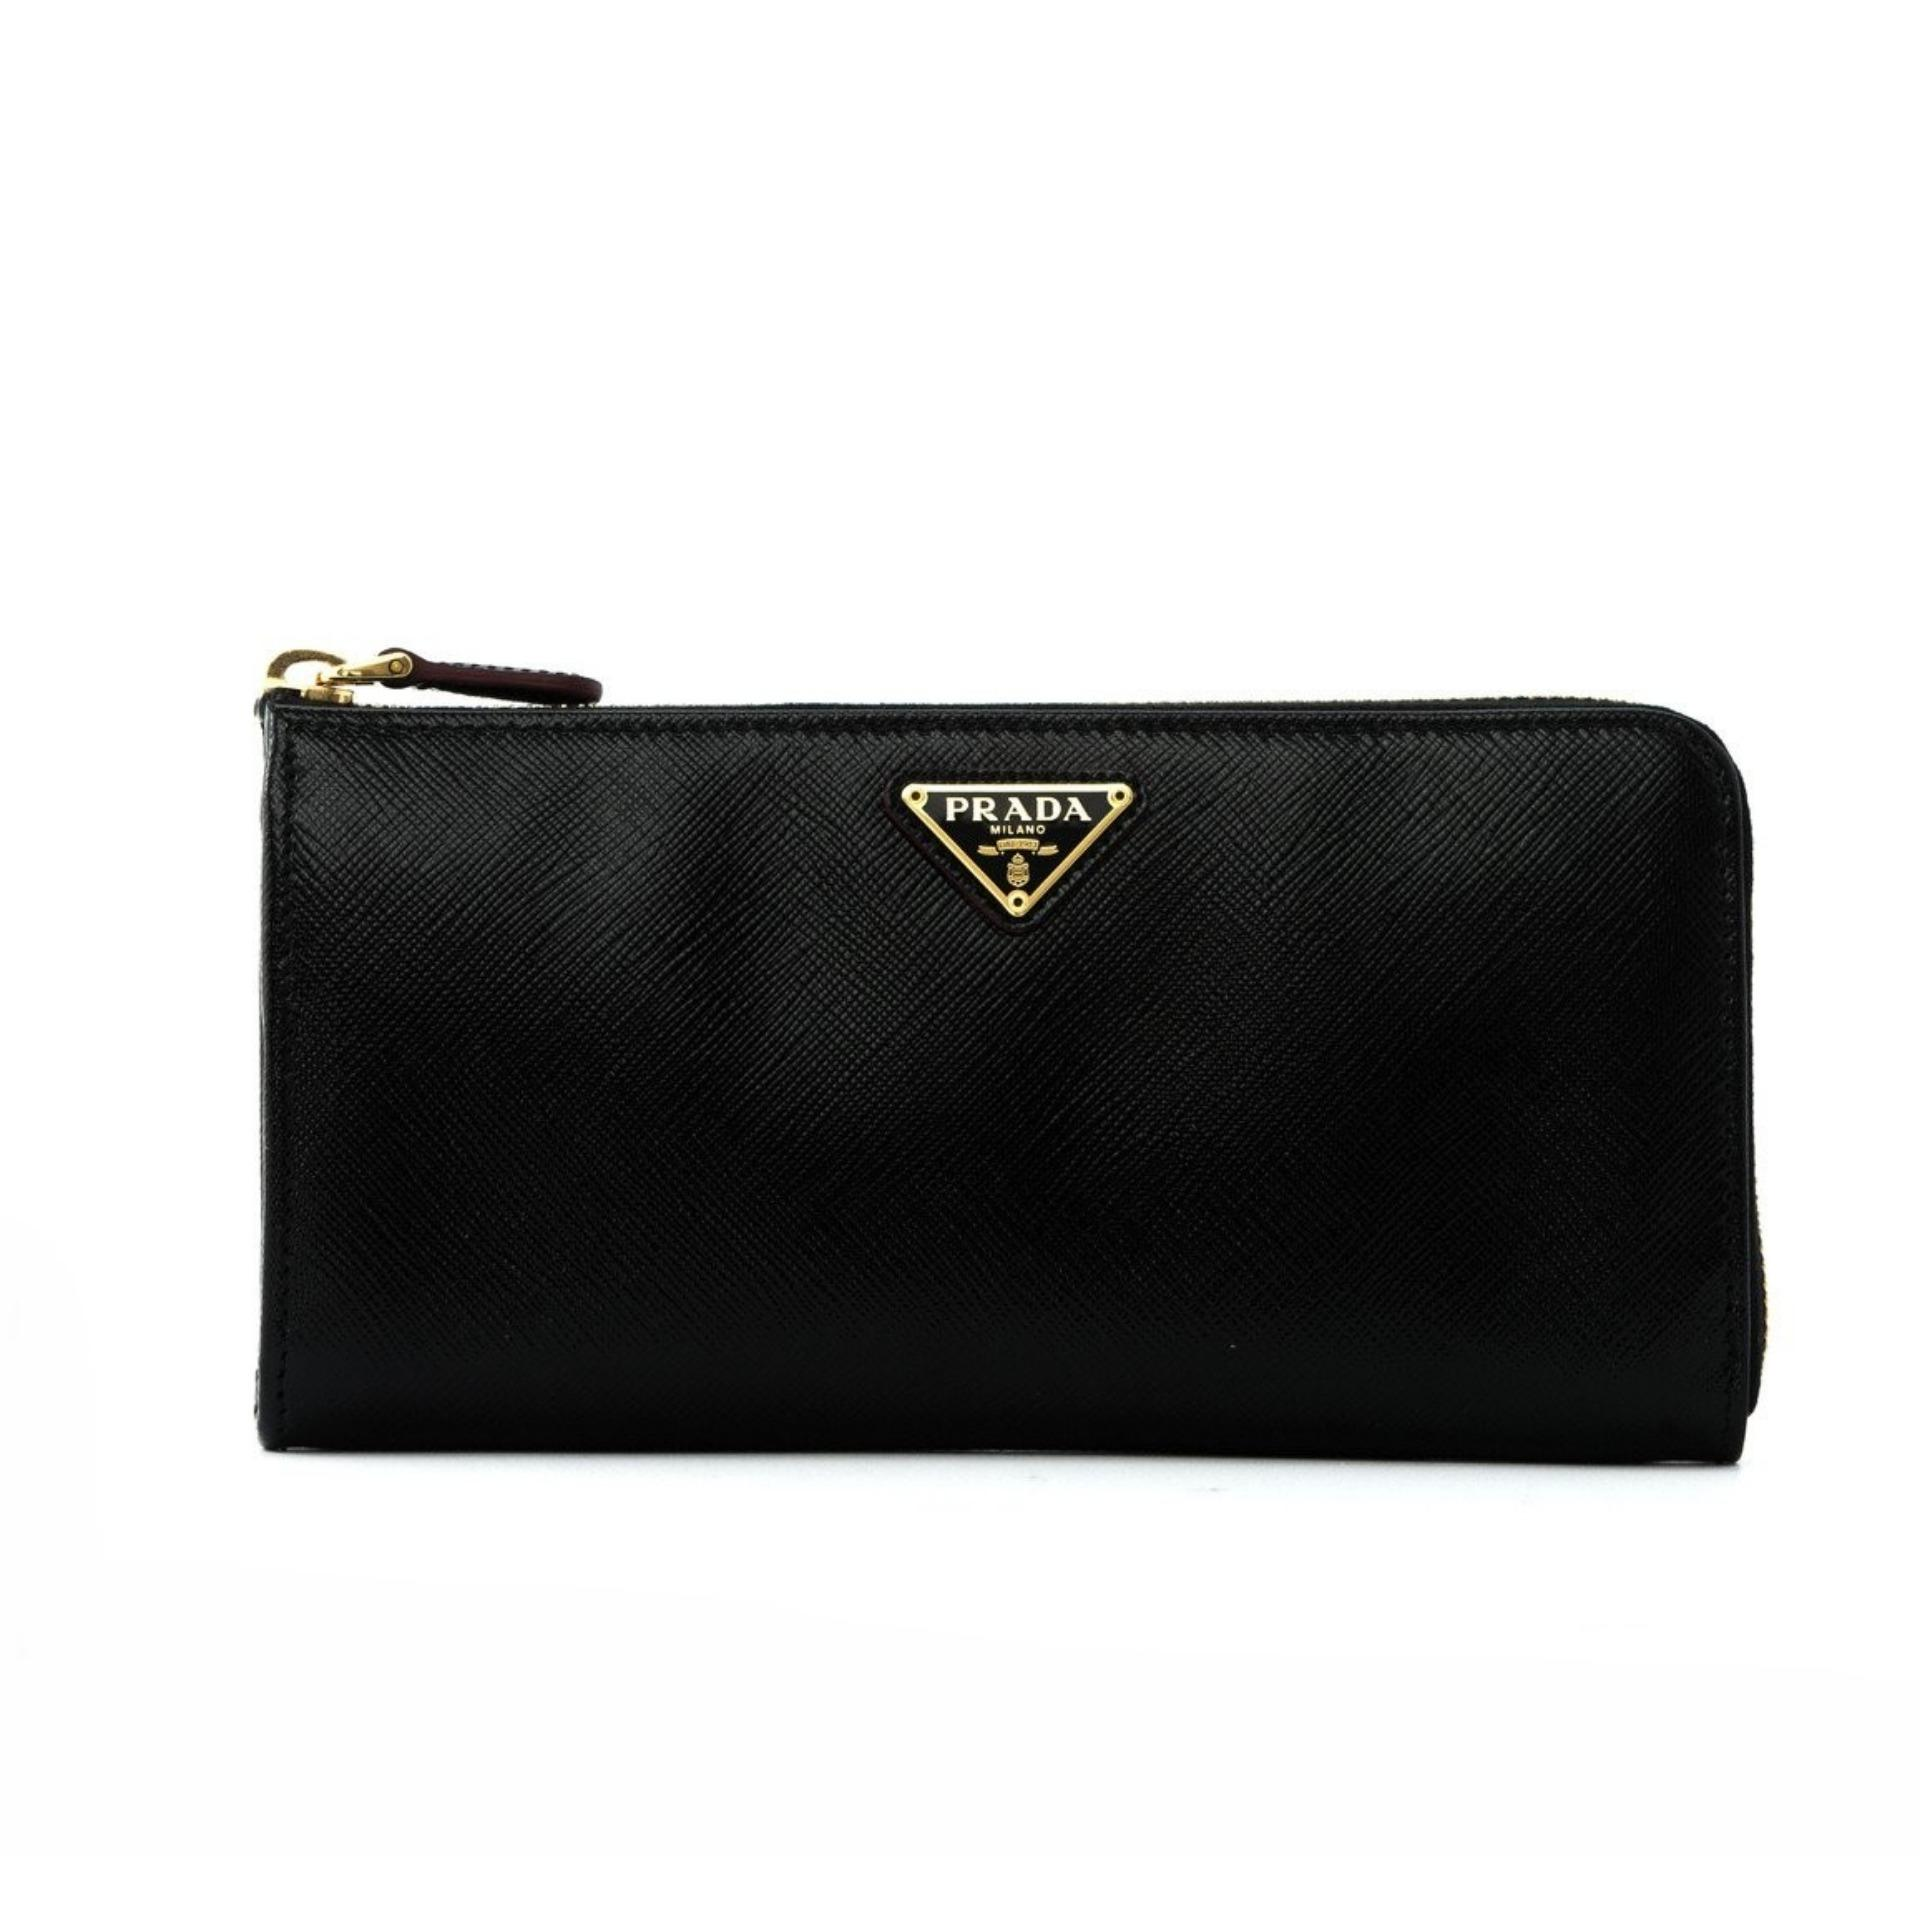 Wallets - Wallet With Flap Saffiano Leather Black - black - Wallets for ladies Prada jOPSs